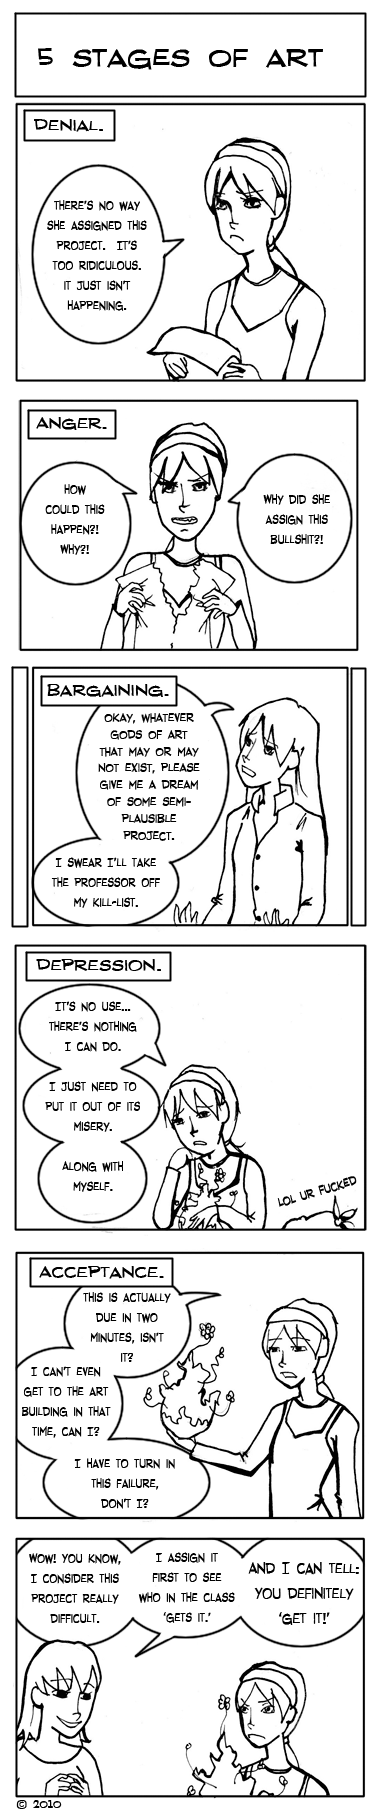 The Five Stages of Art